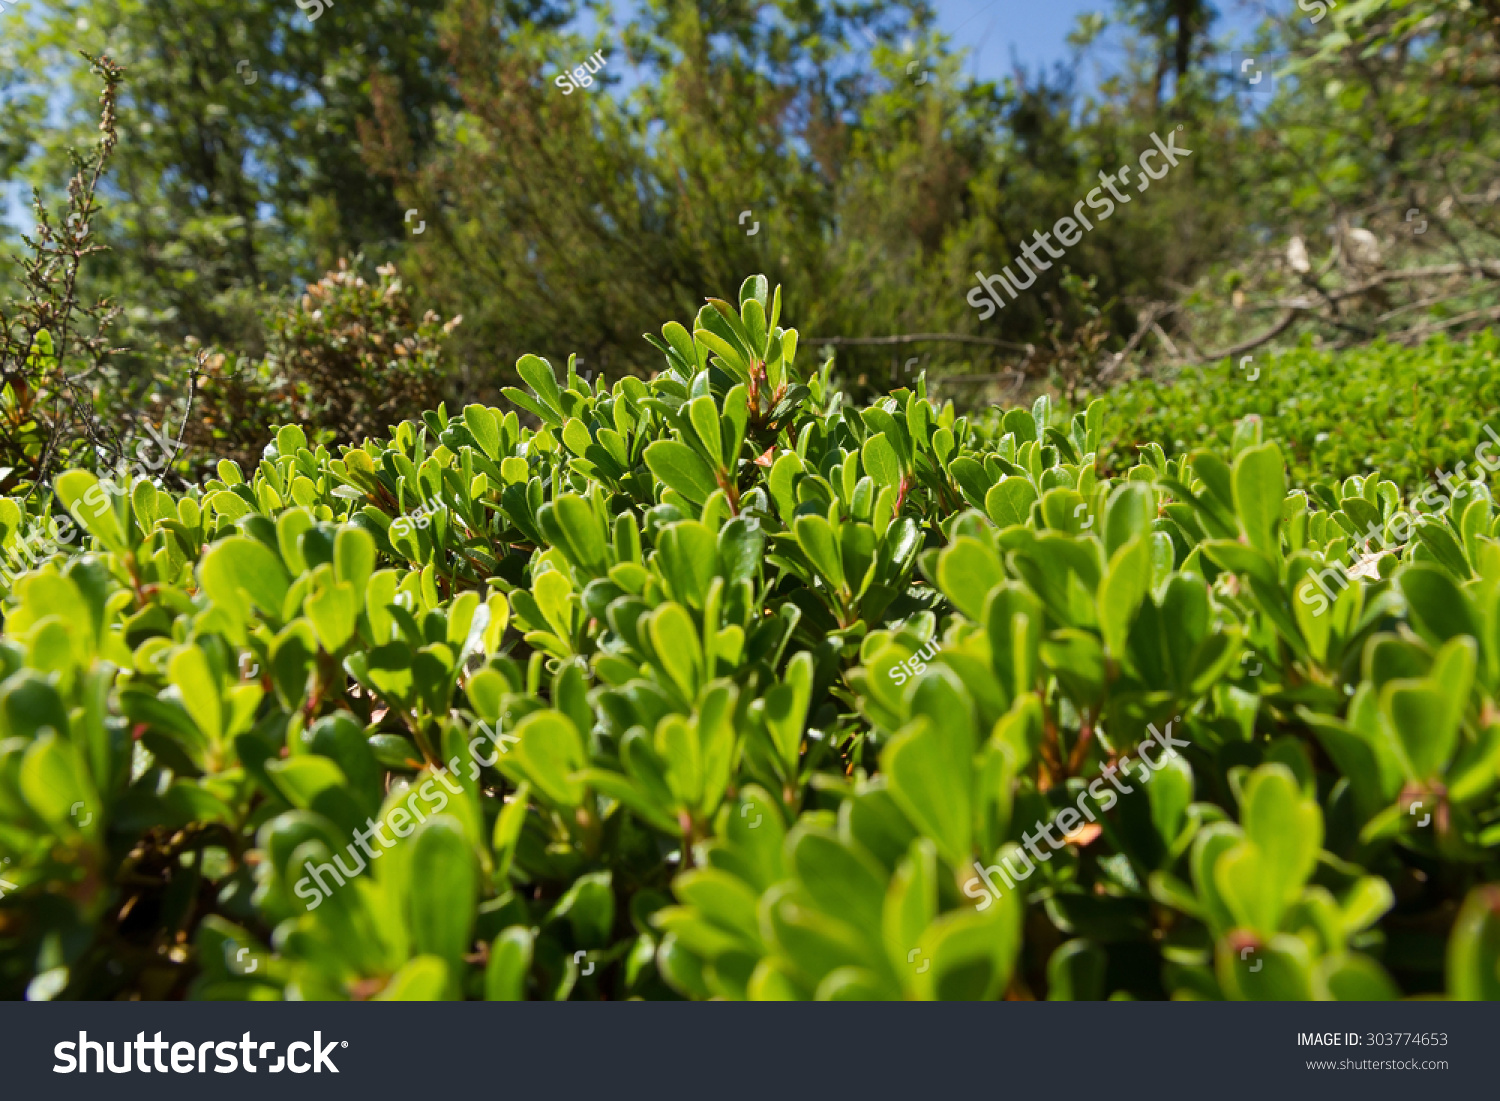 properties of plants in the forest Quality of plant growth  soil types and fundamental soil properties of a costa rican tropical montane cloud forest  soil types and fundamental soil properties .